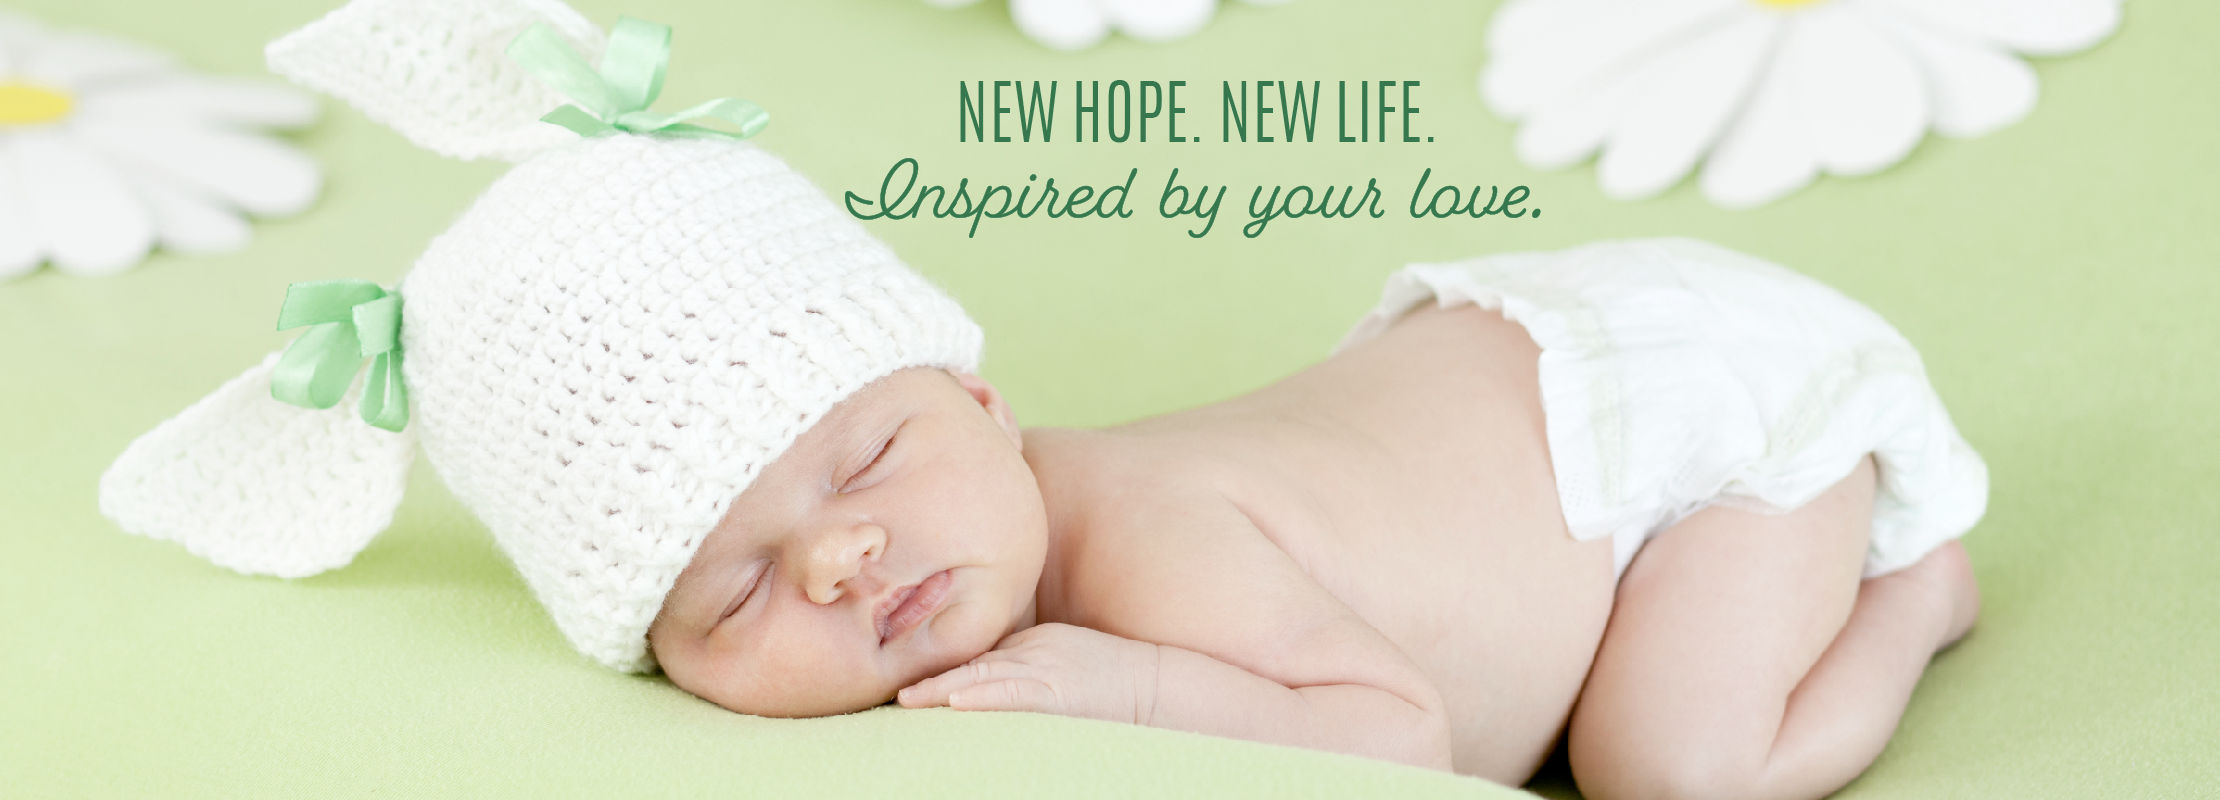 New Hope. New Life. Inspired by your love.